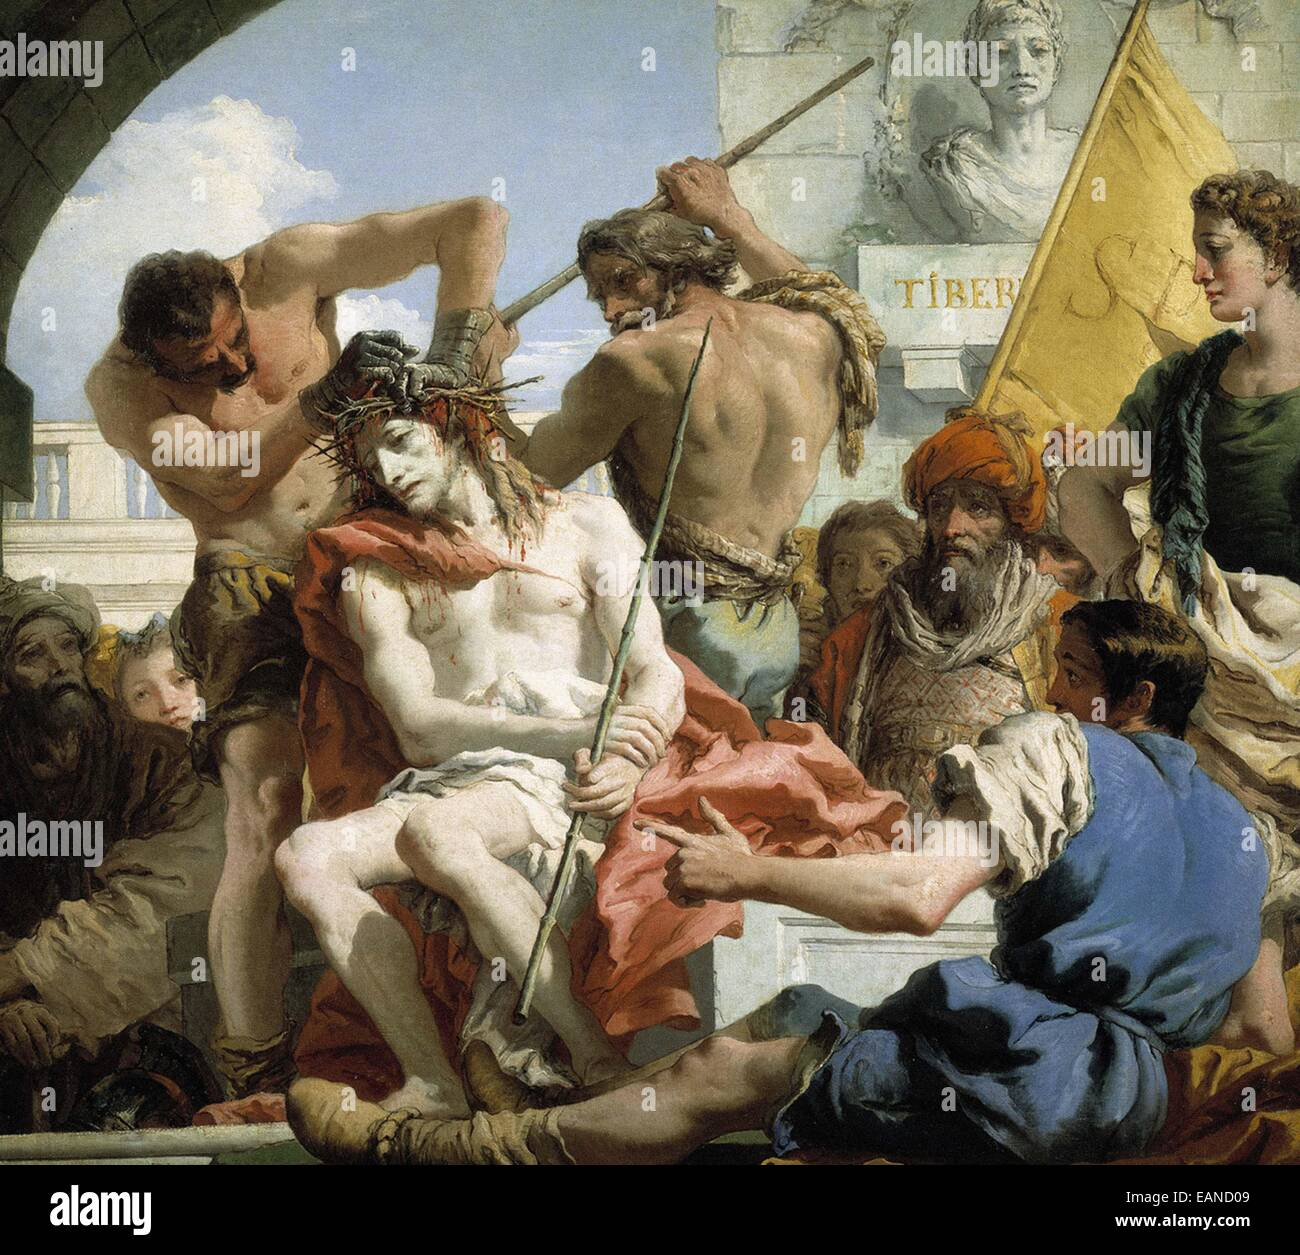 Giandomenico Tiepolo  The Crown of Thorns - Stock Image